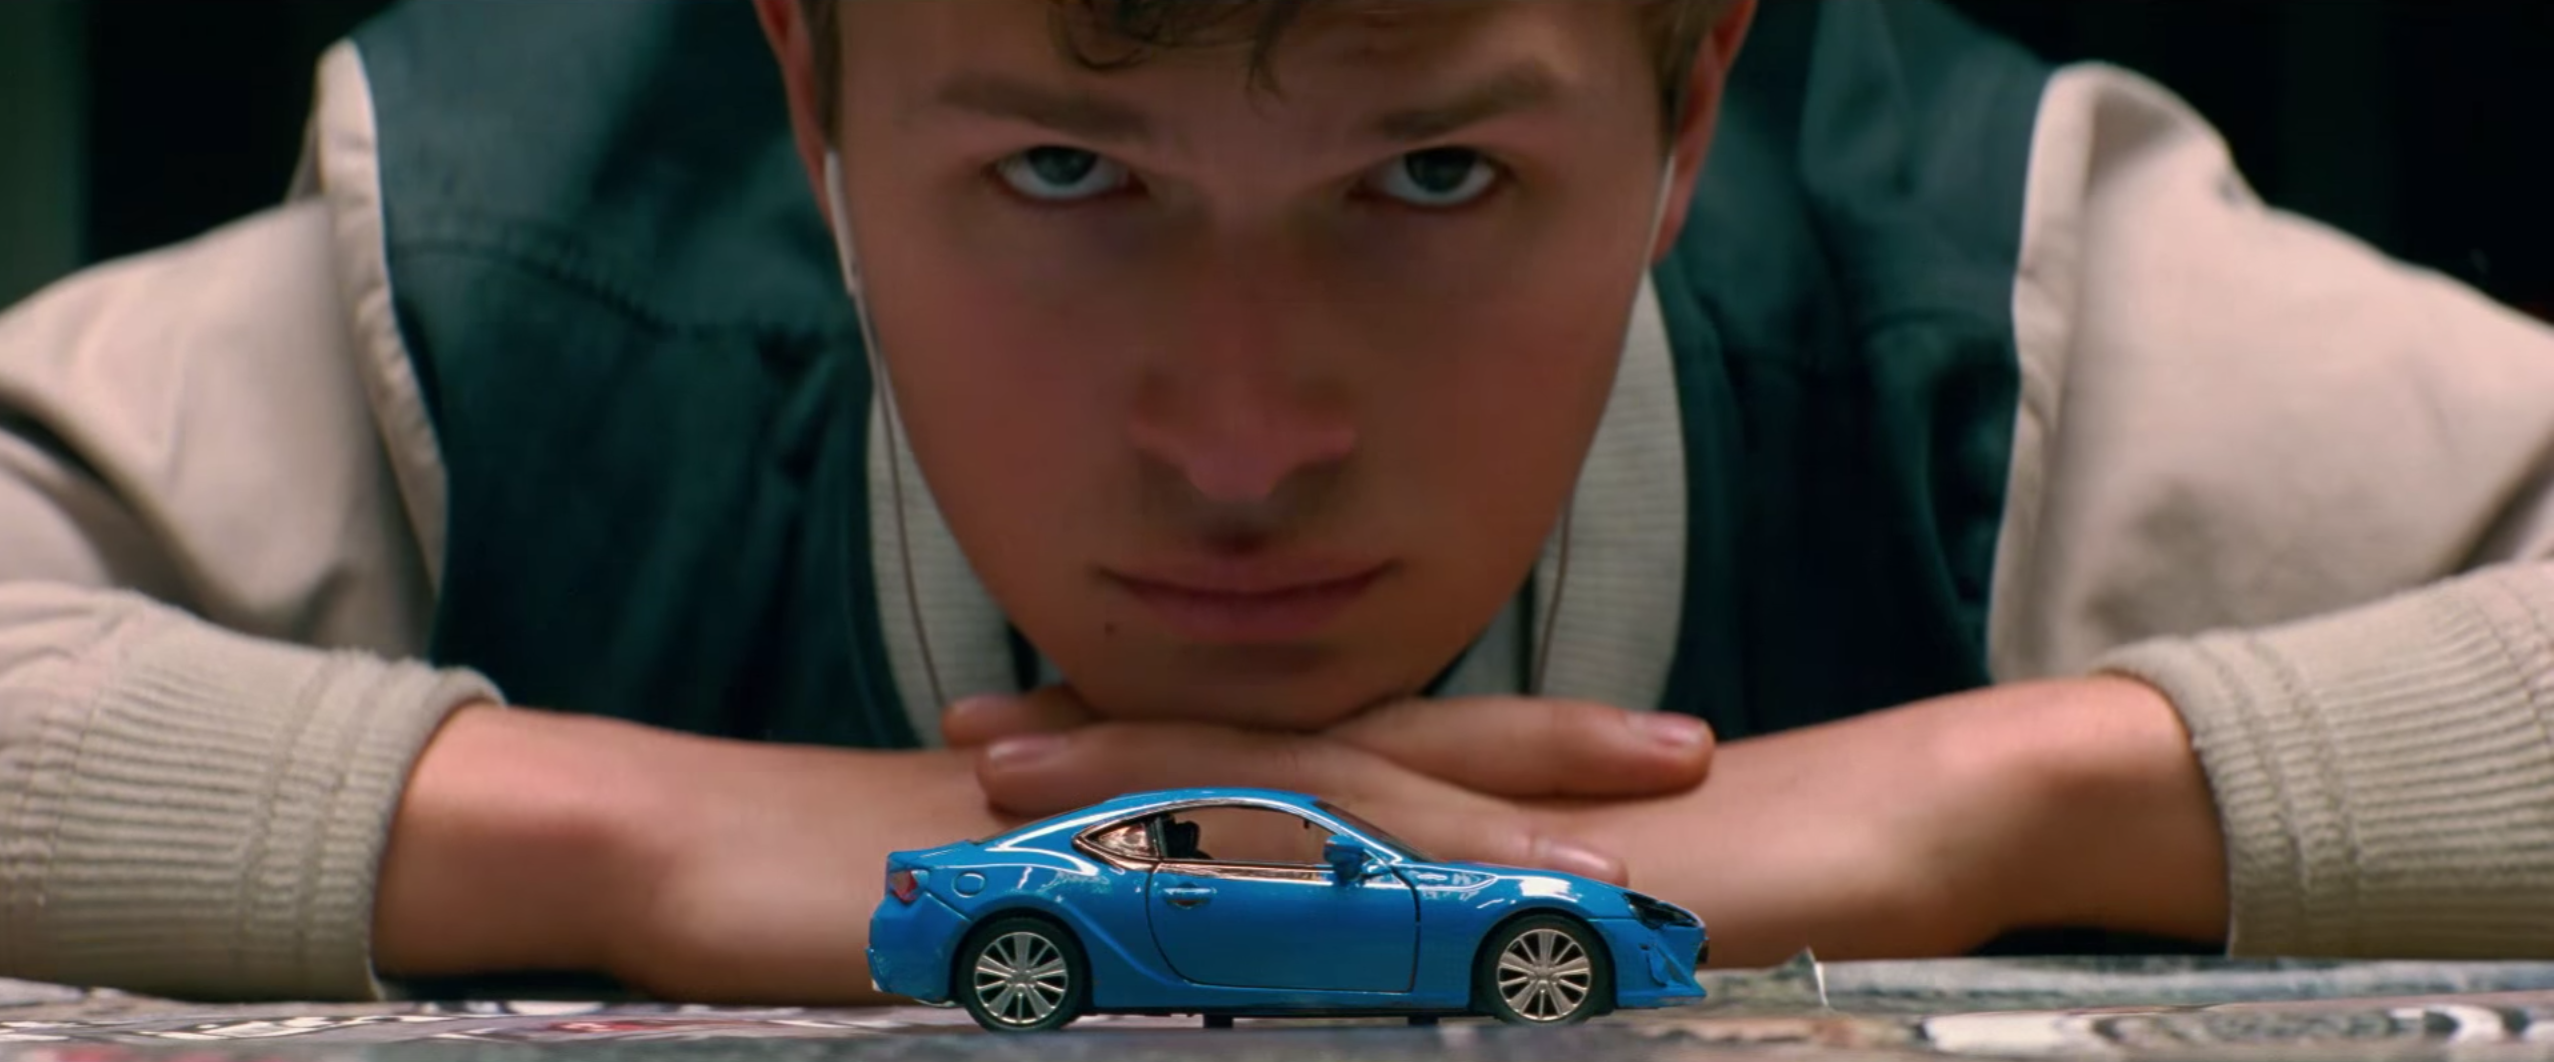 The trailer for 'Baby Driver' promises high speed heist thrills